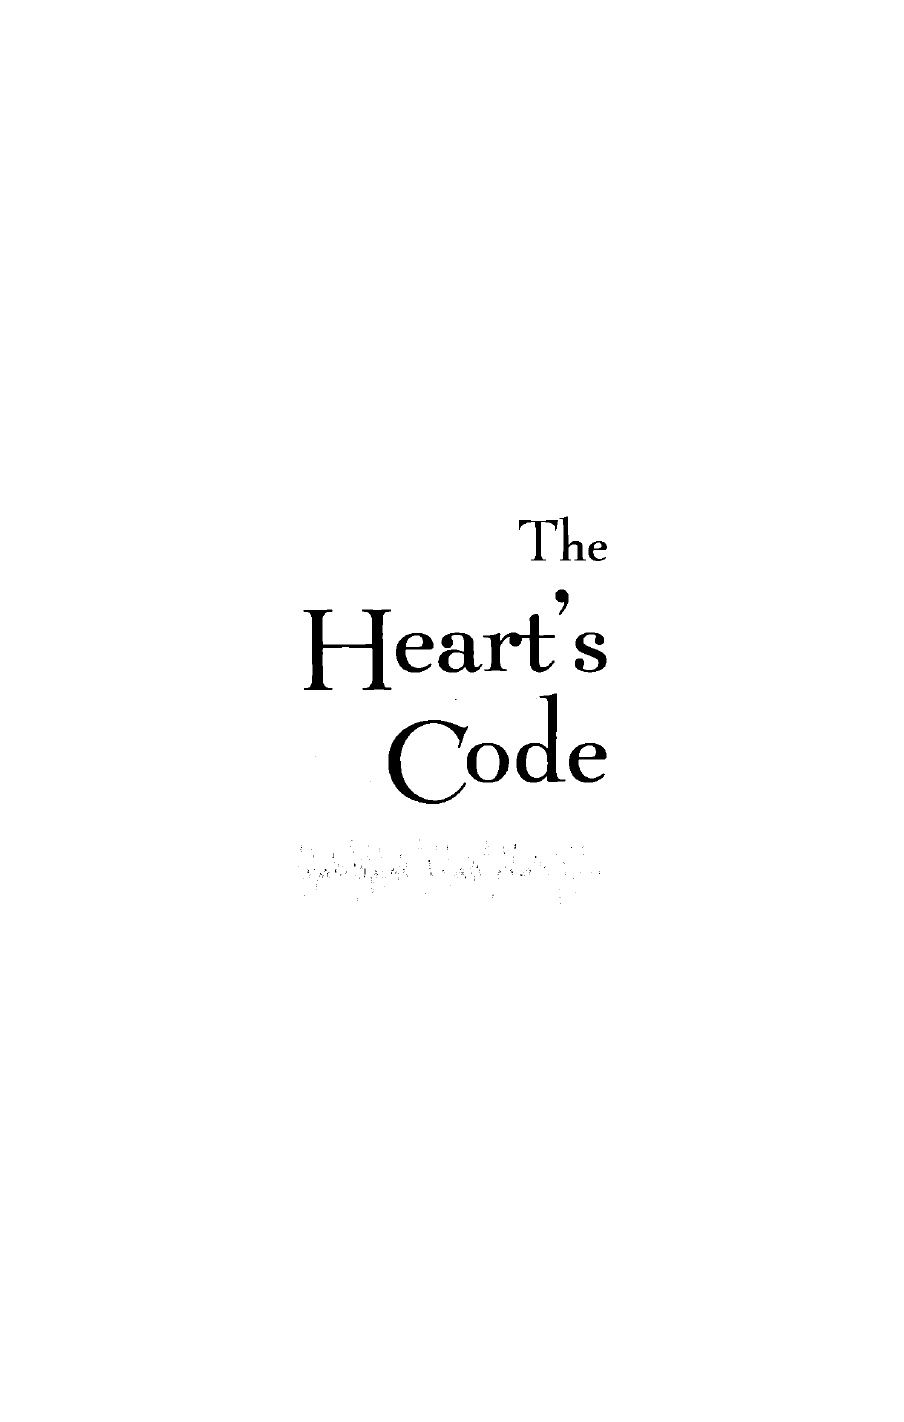 Paul paarsall the hearts codepdf books worth reading paul paarsall the hearts code fandeluxe Choice Image